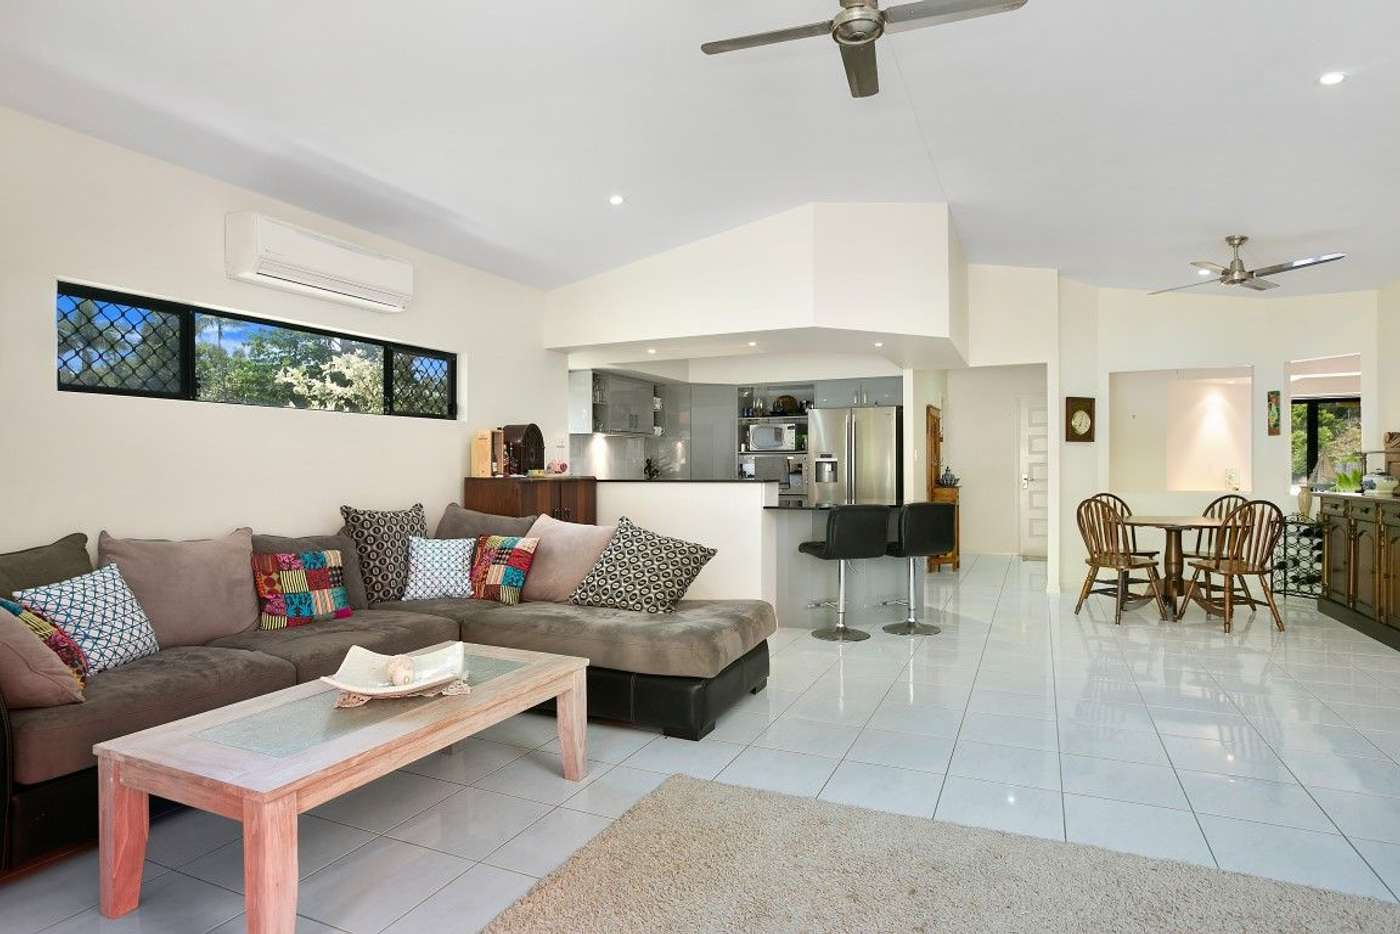 Fifth view of Homely house listing, 56 Sanctuary Crescent, Wongaling Beach QLD 4852